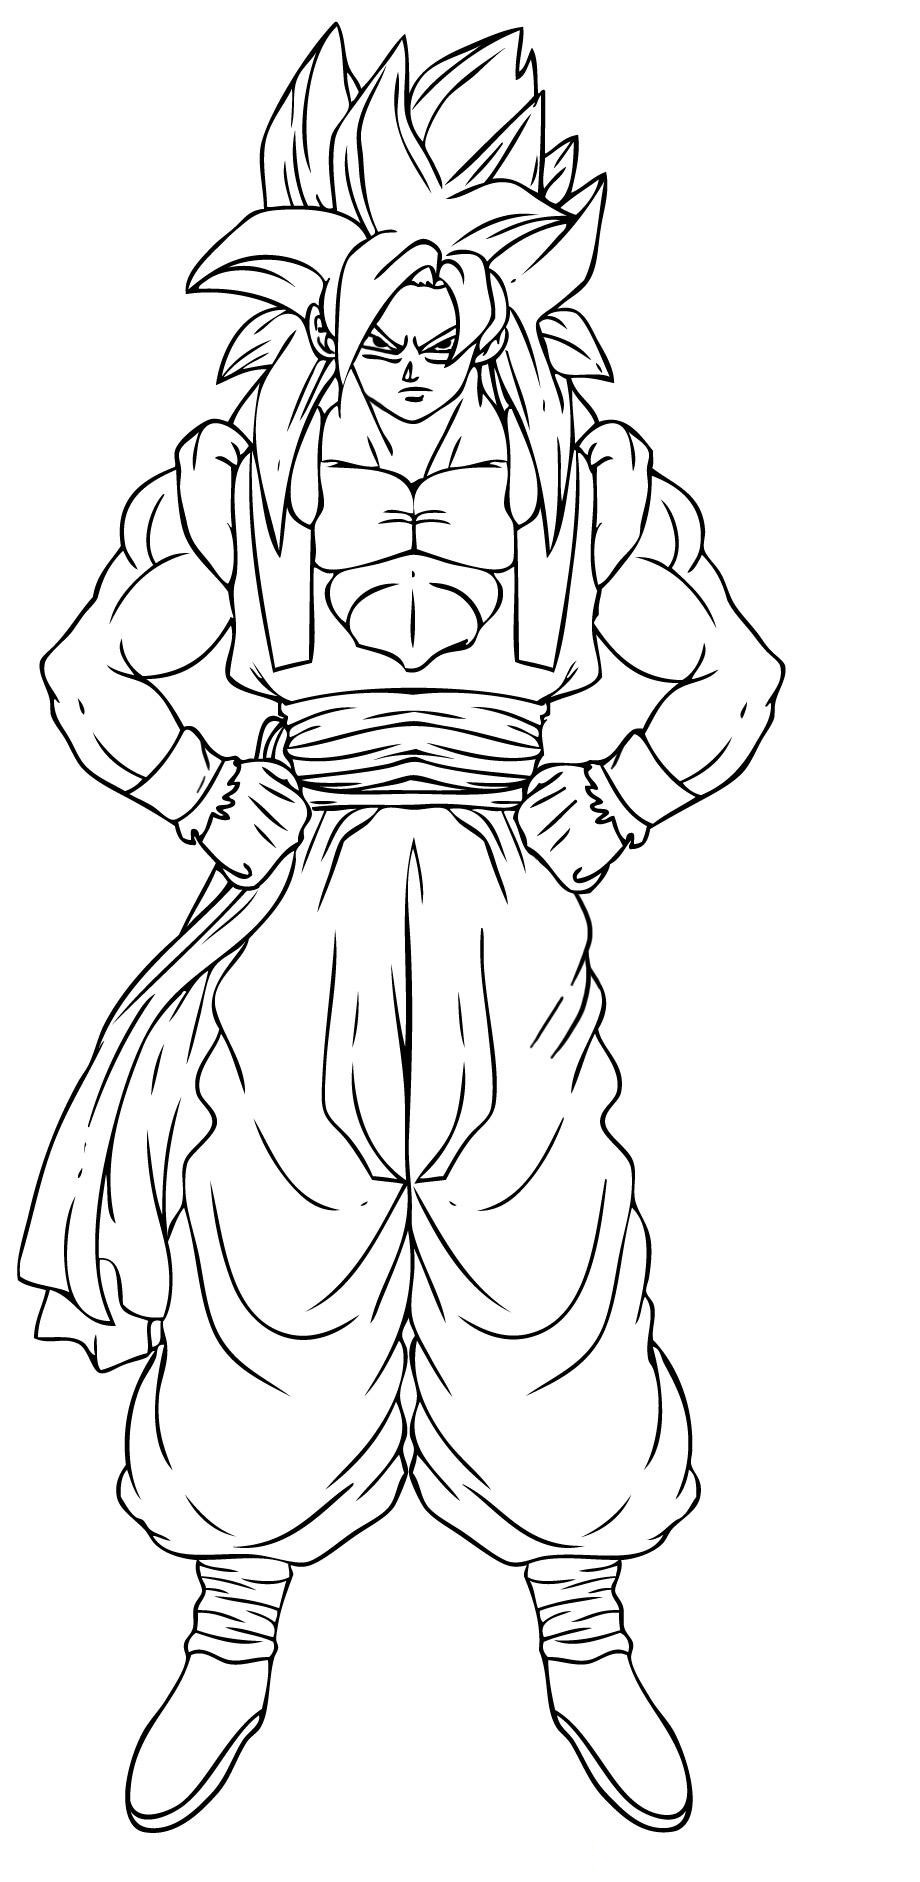 free dragonball z coloring pages - photo#28